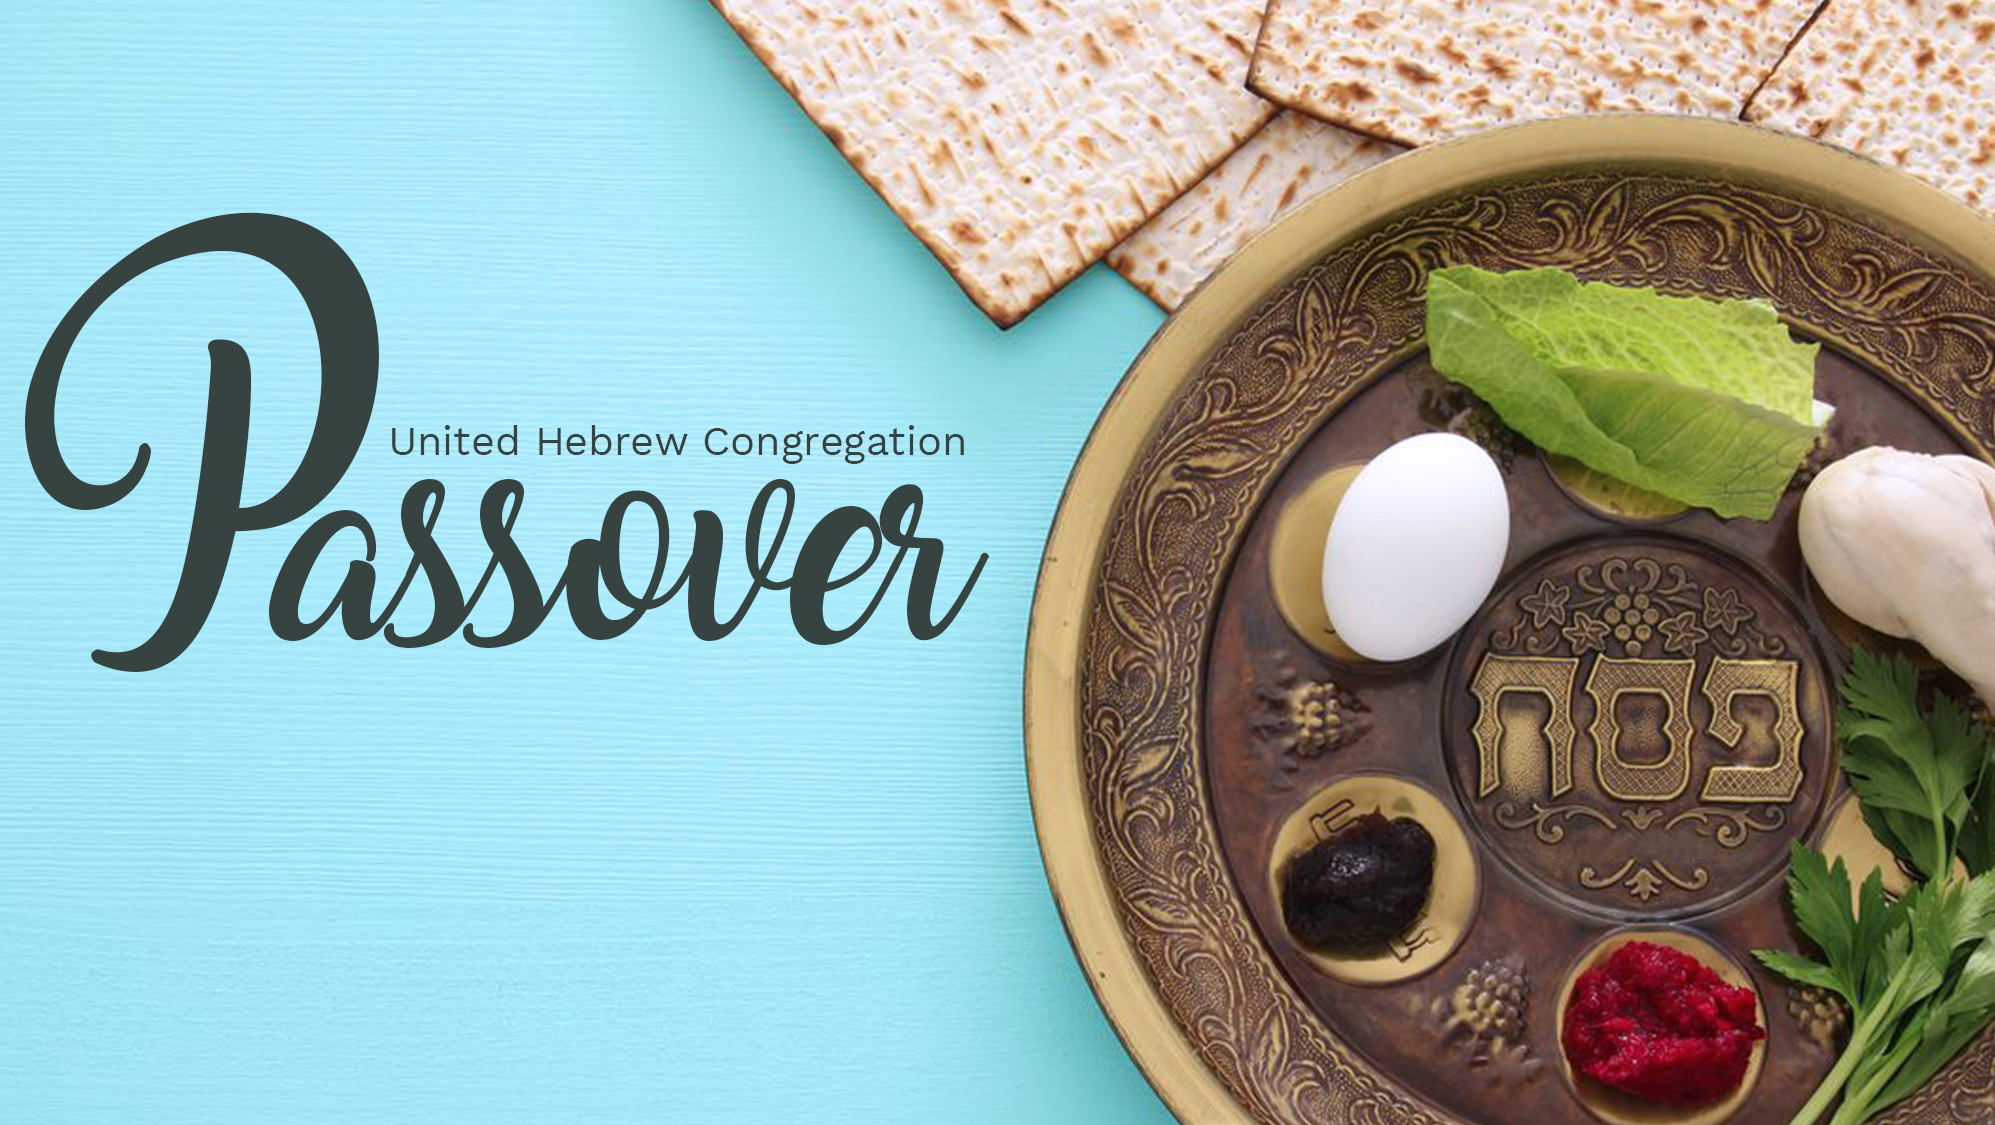 Passover First Night Seder - Canceled